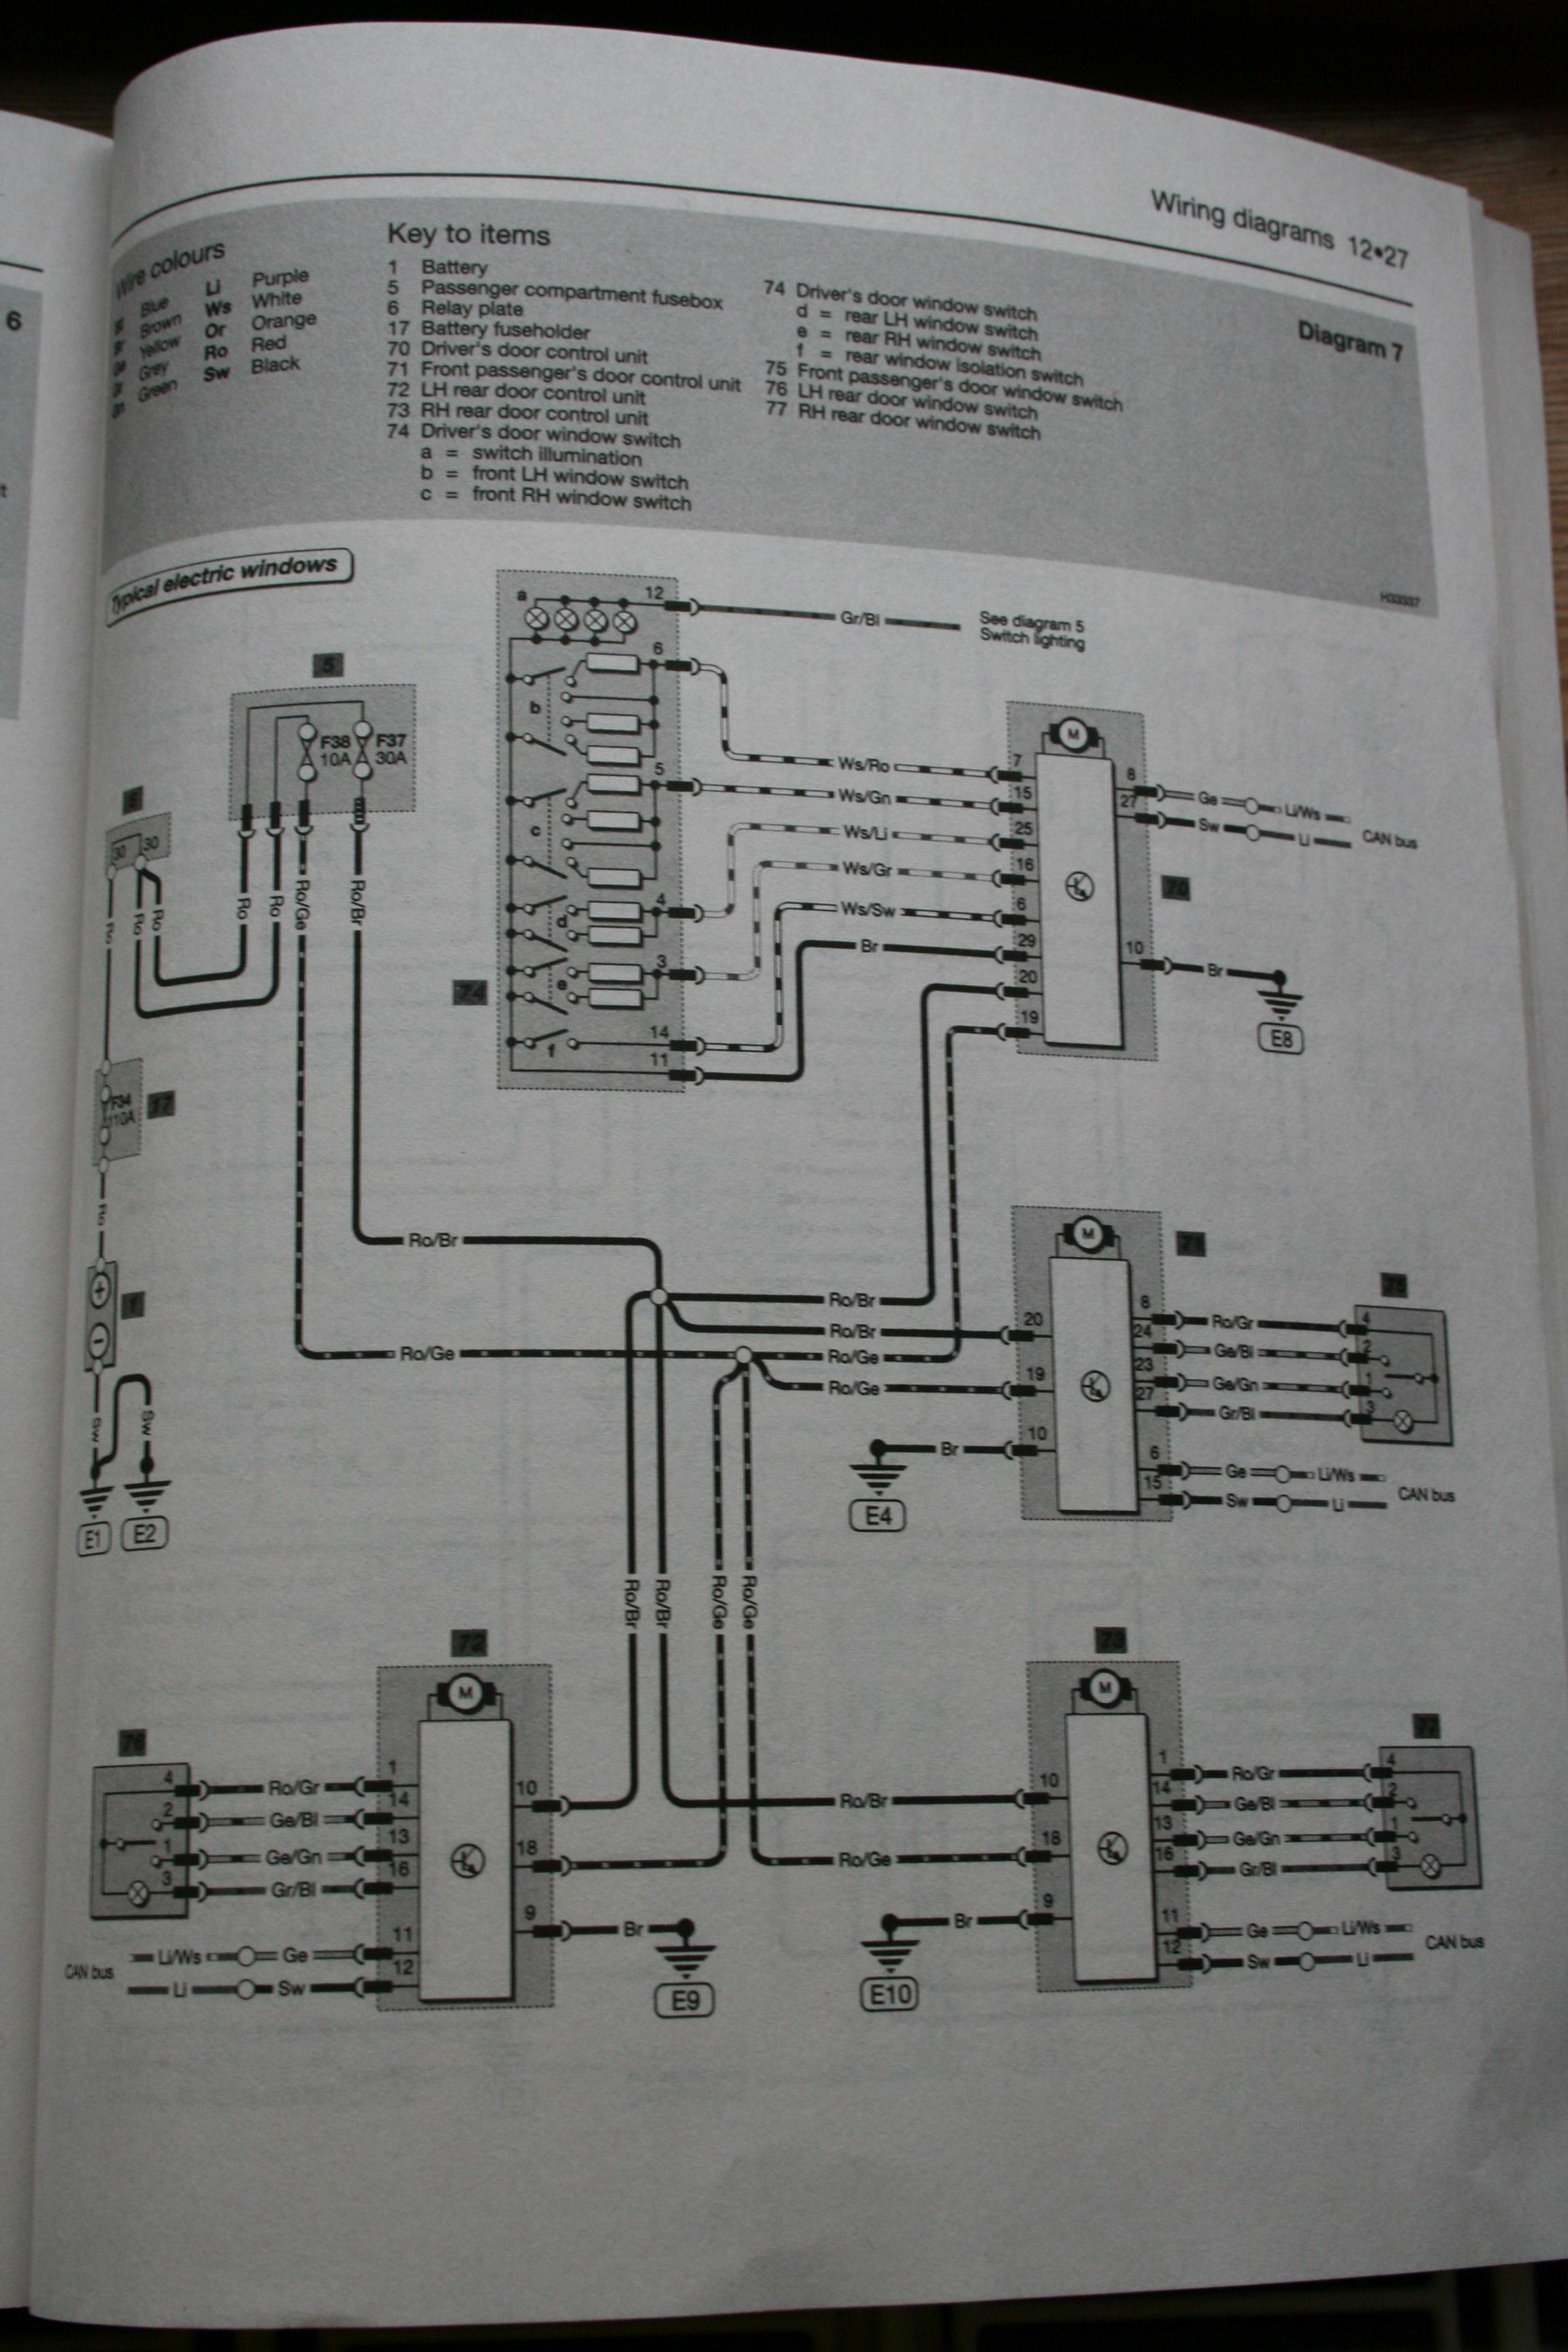 Octavia Central Locking Wiring Diagram